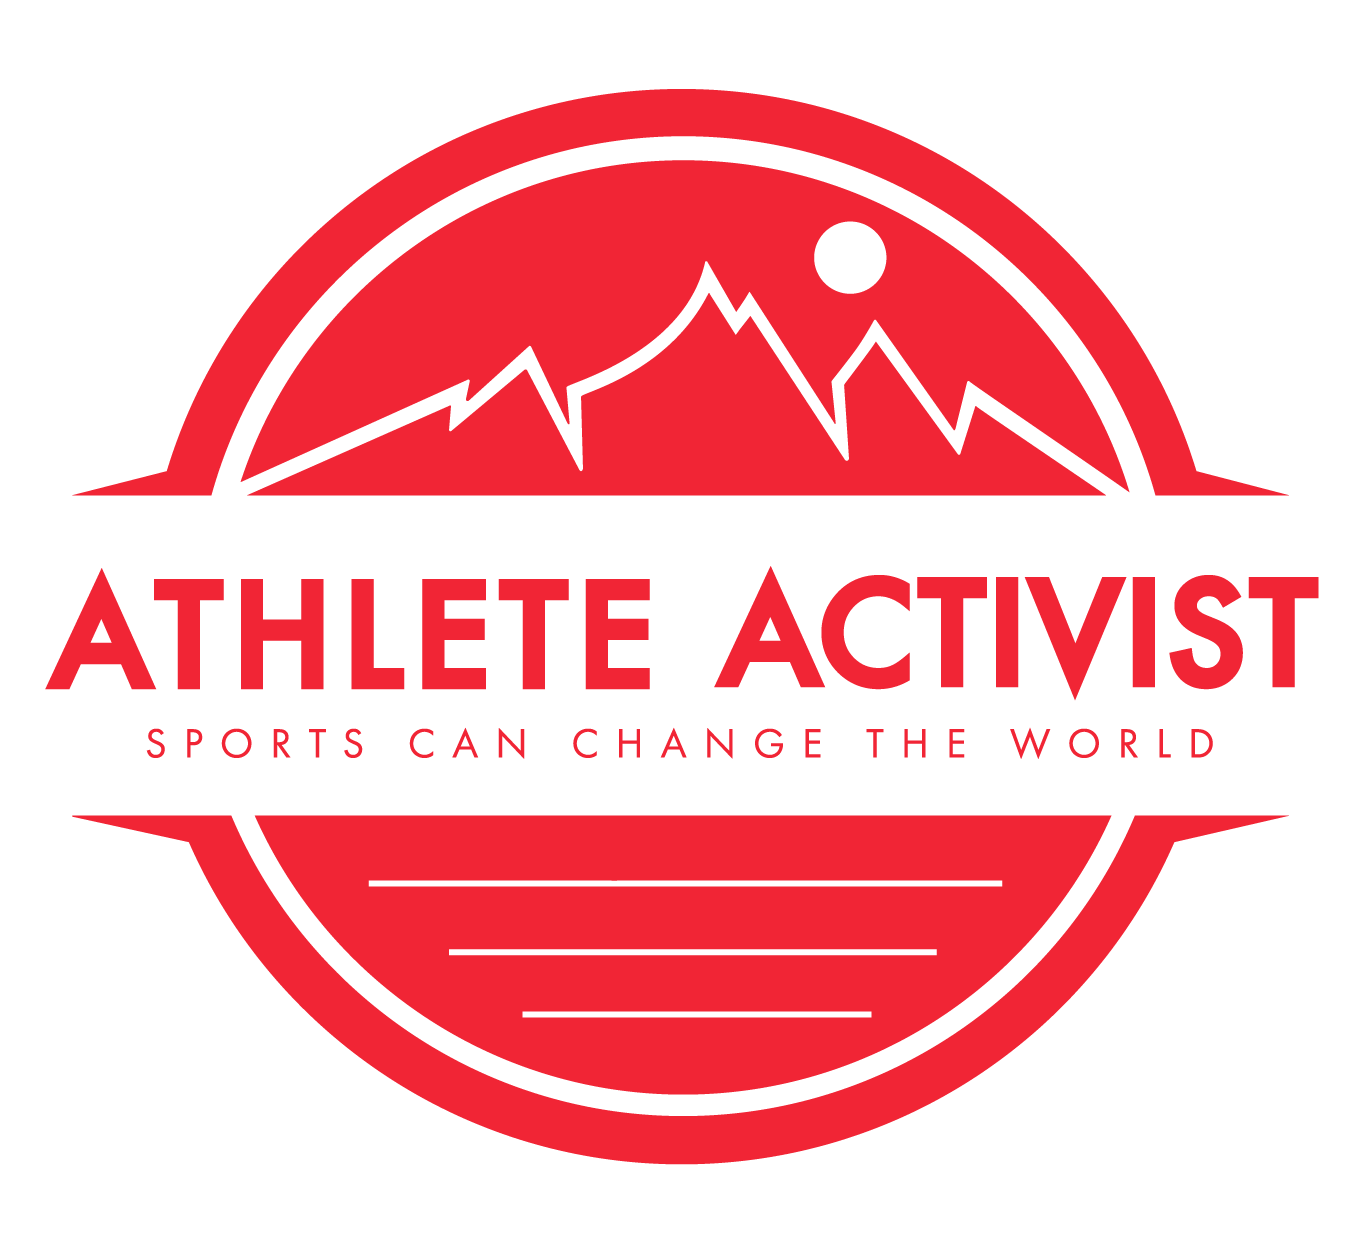 Athlete Activist logo